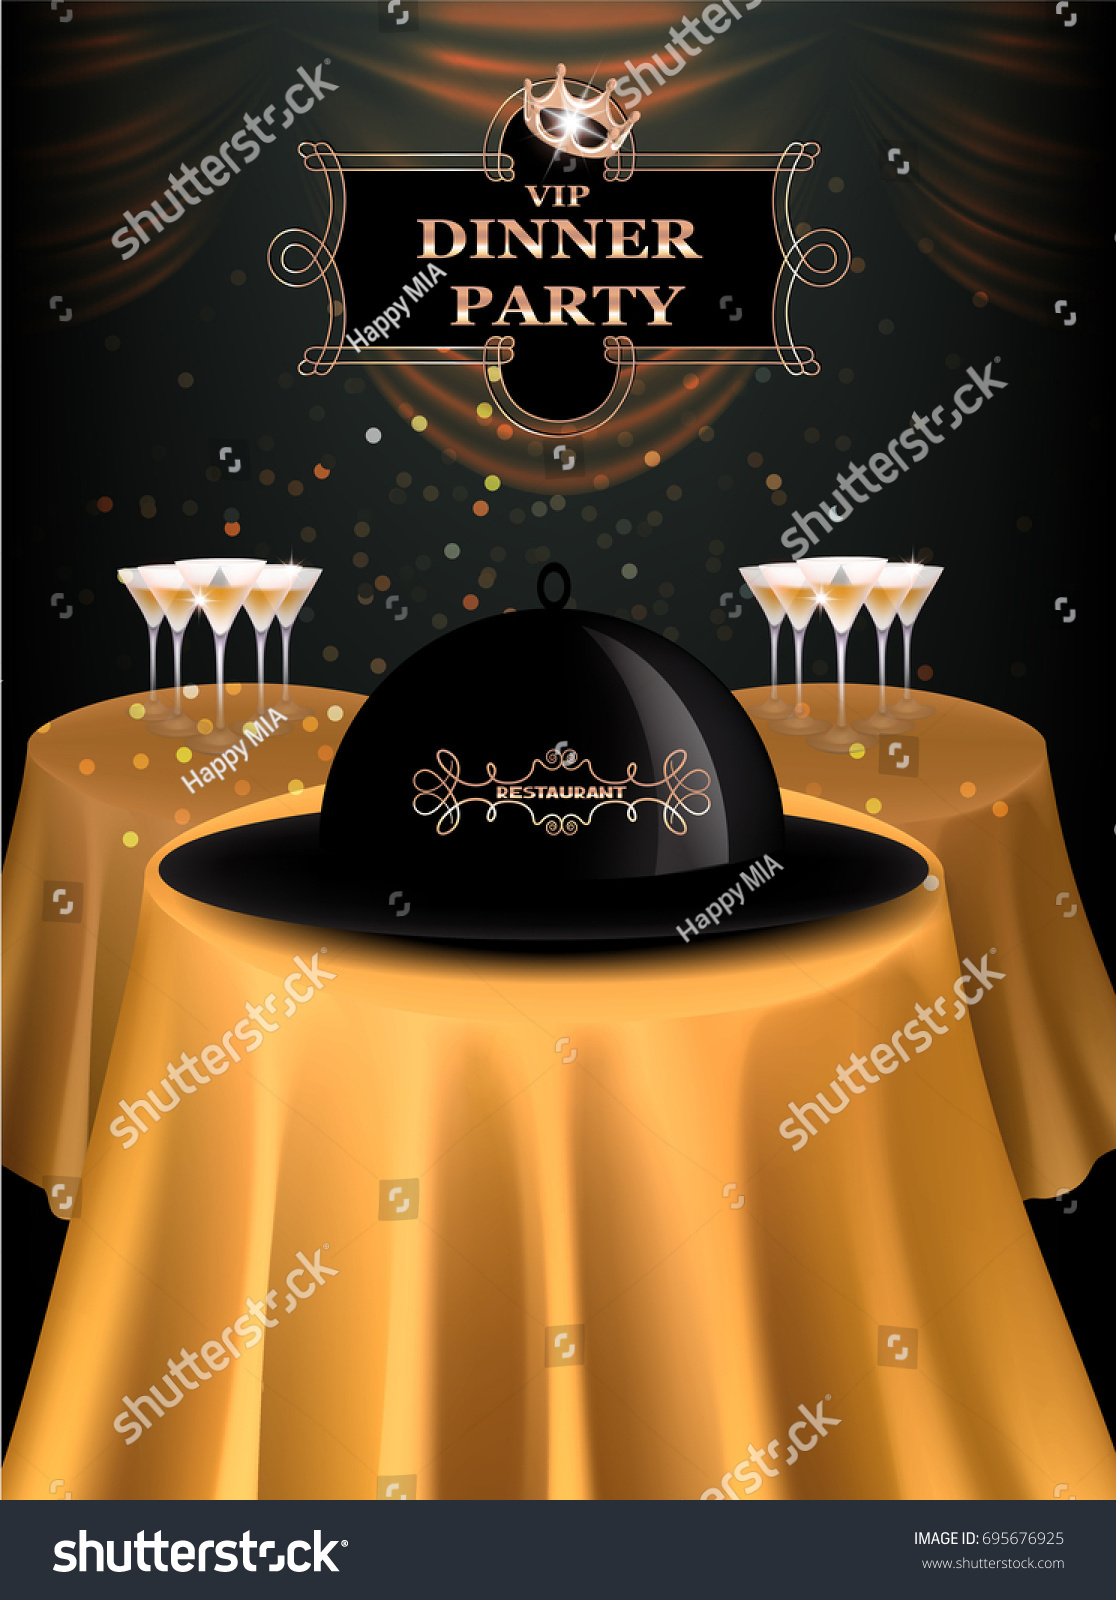 Vip Dinner Party Invitation Card Gold Stock Vector Royalty